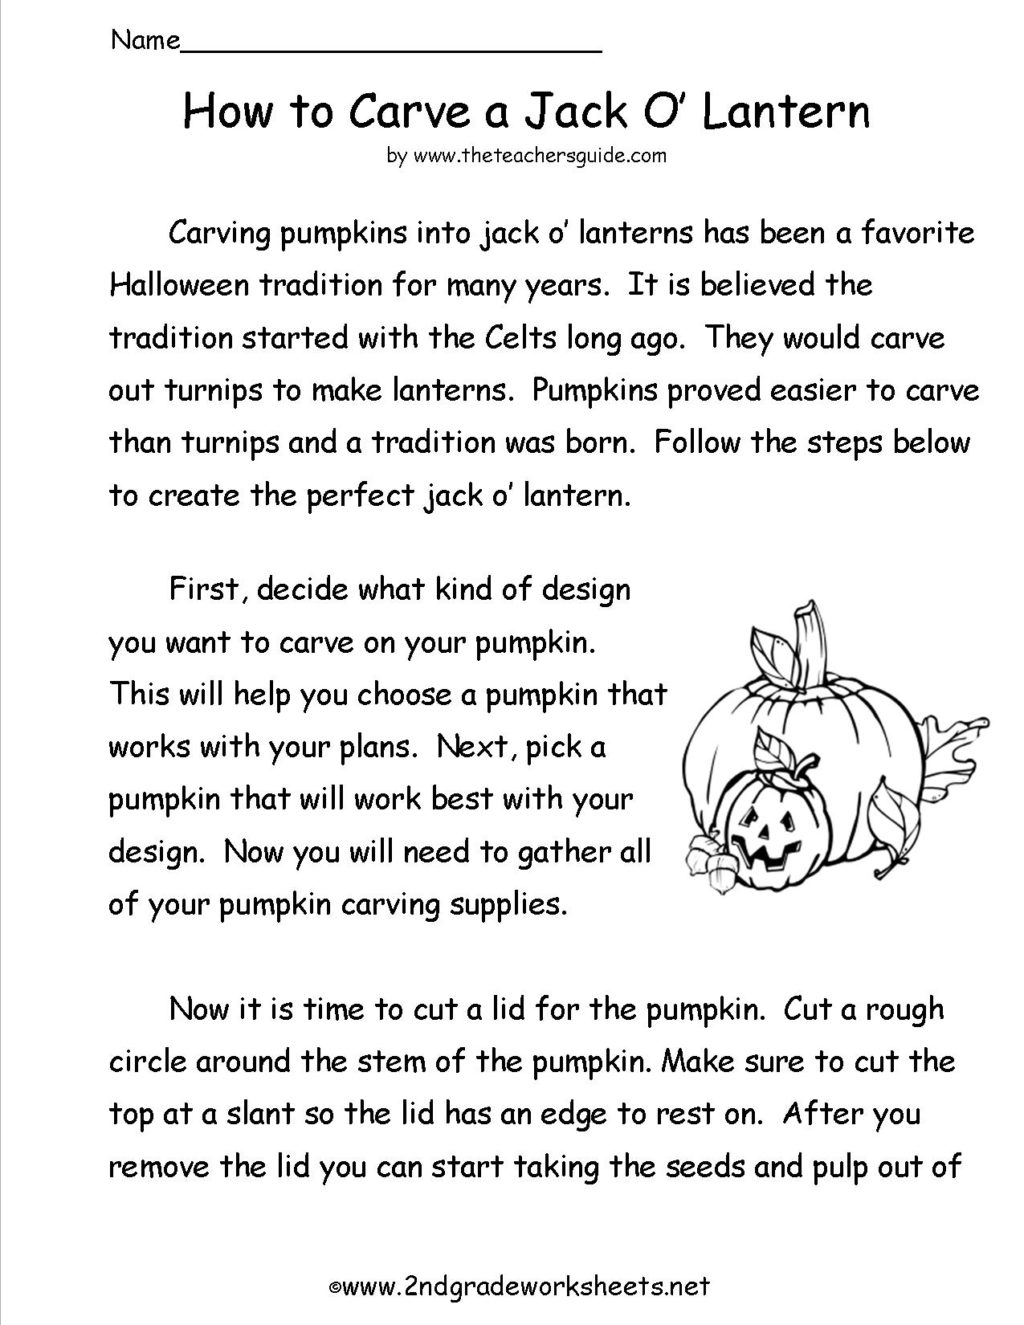 Worksheet ~ Fun Reading Activities For 1Strade Carveapumpkin